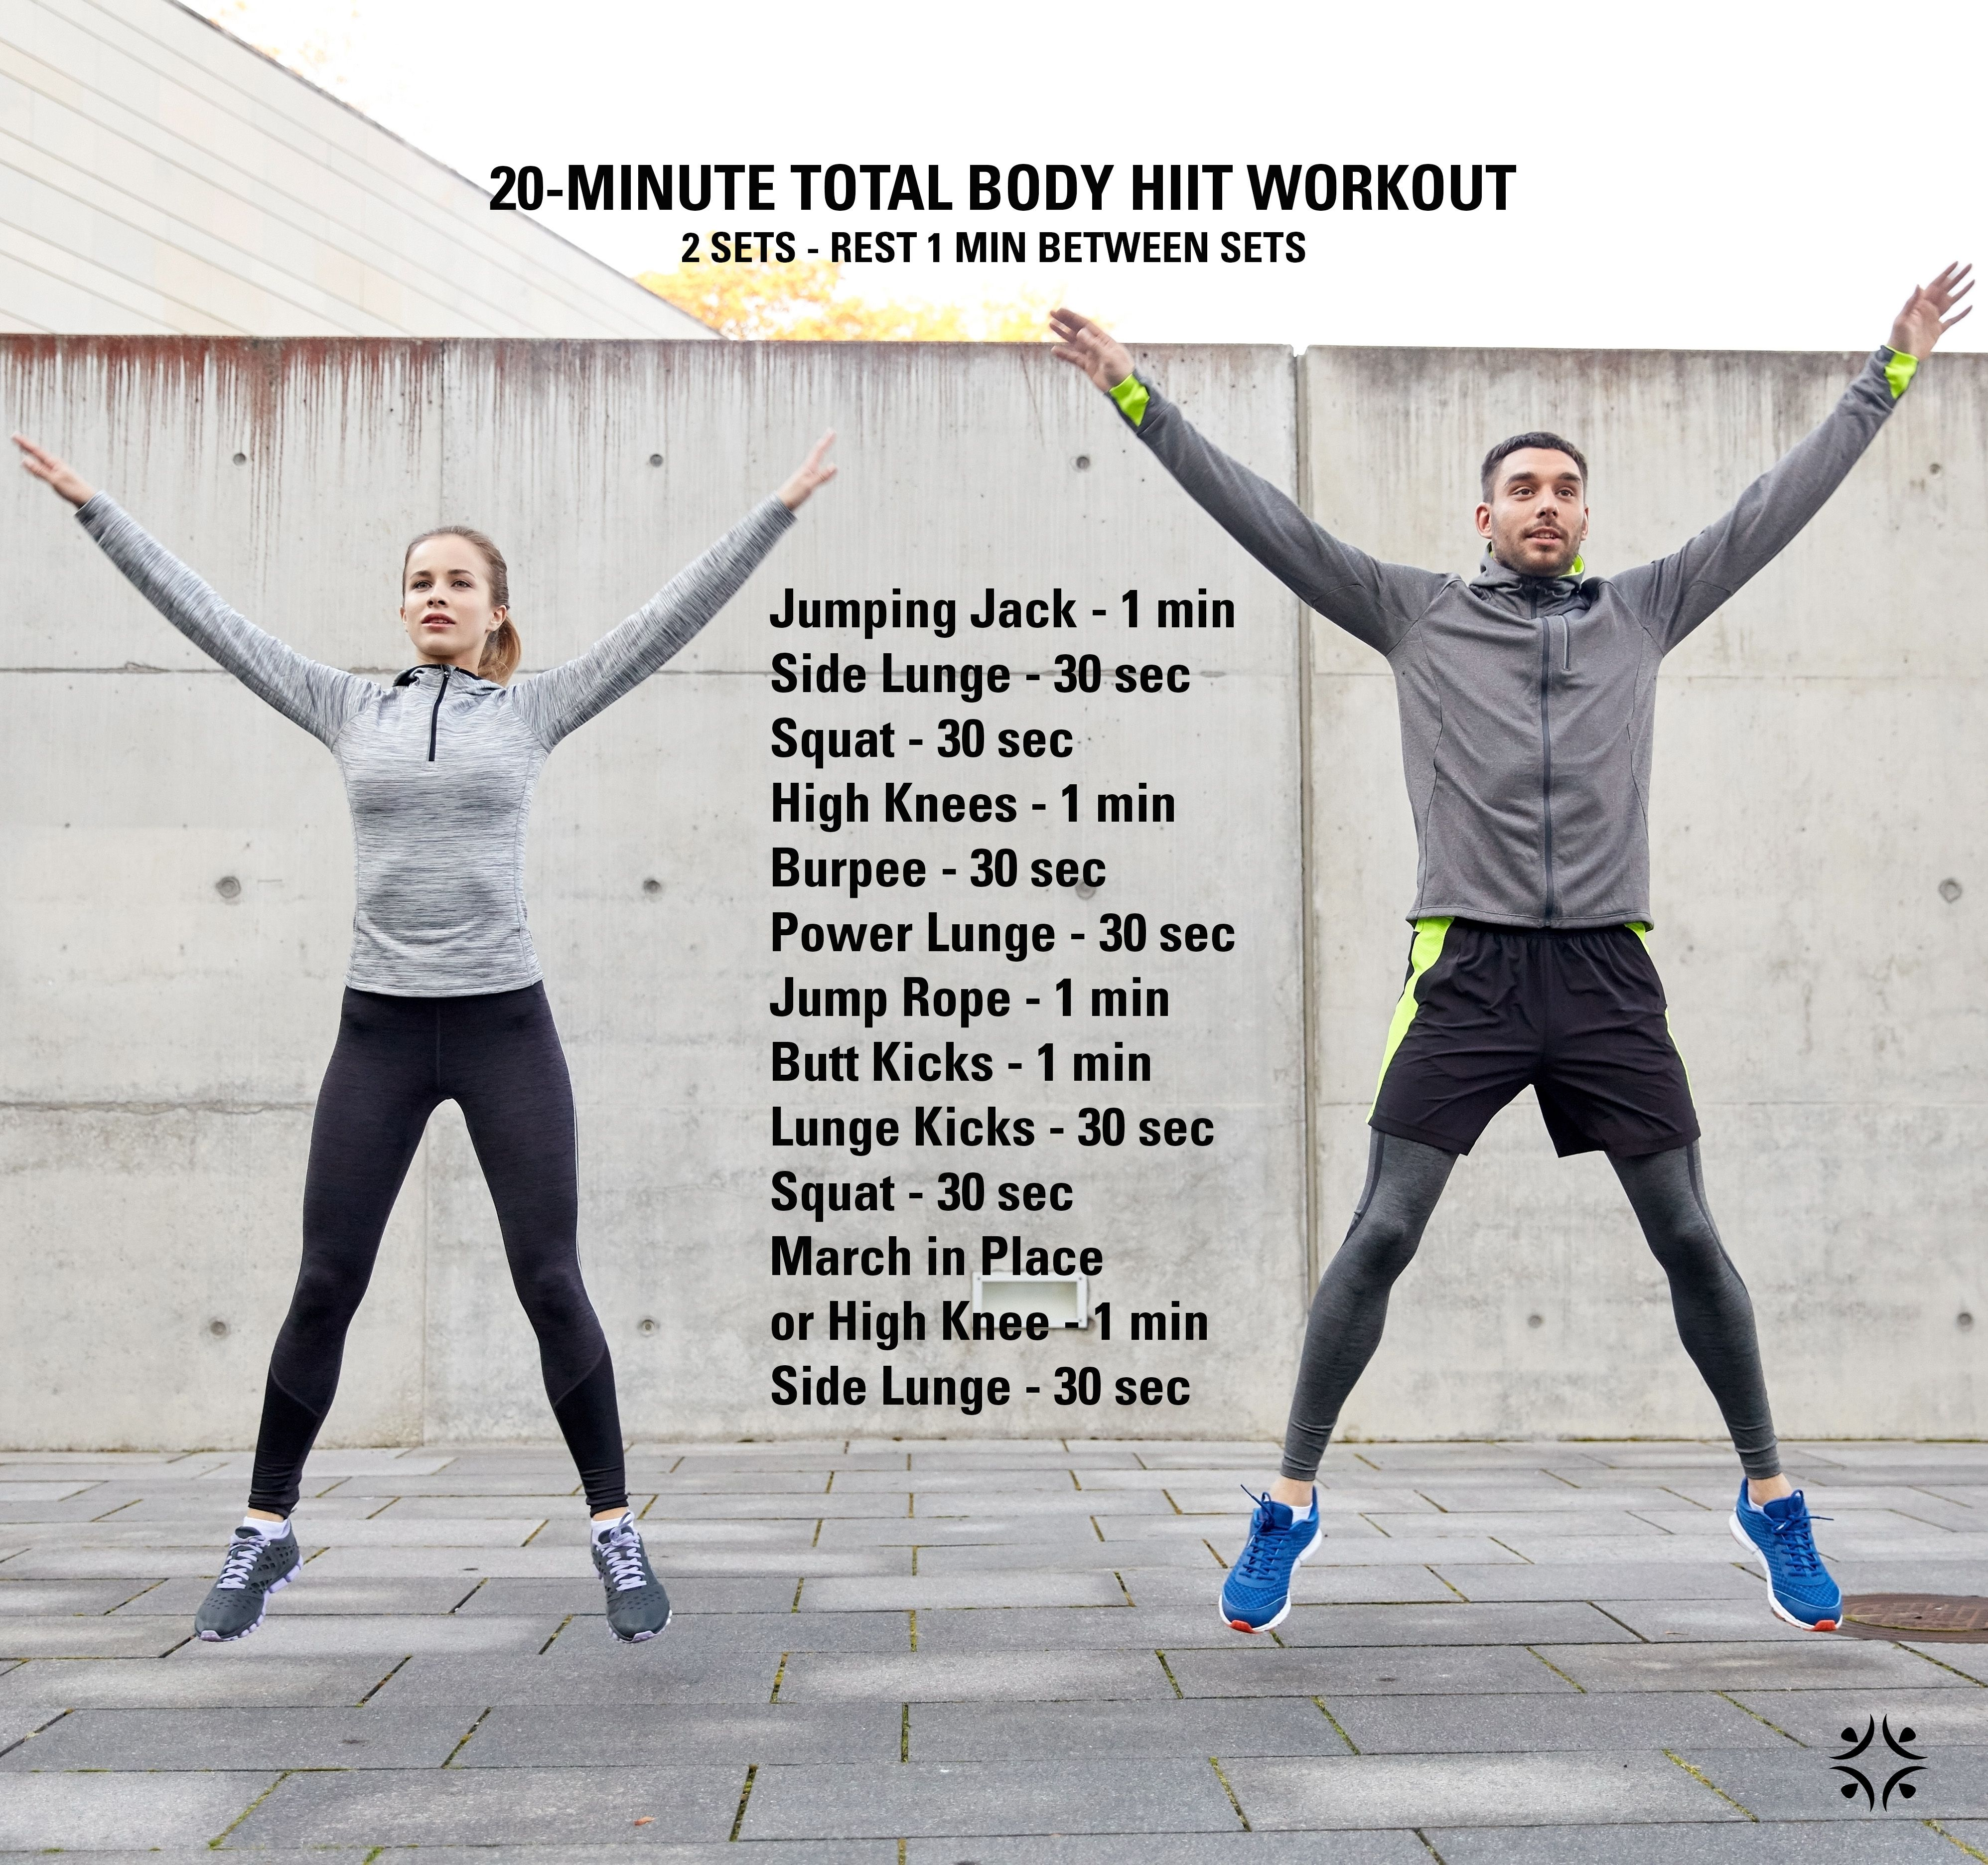 Quick Strategies In Strength Training Uncovered: Can You Handle This 20-Minute, Total Body HIIT Workout